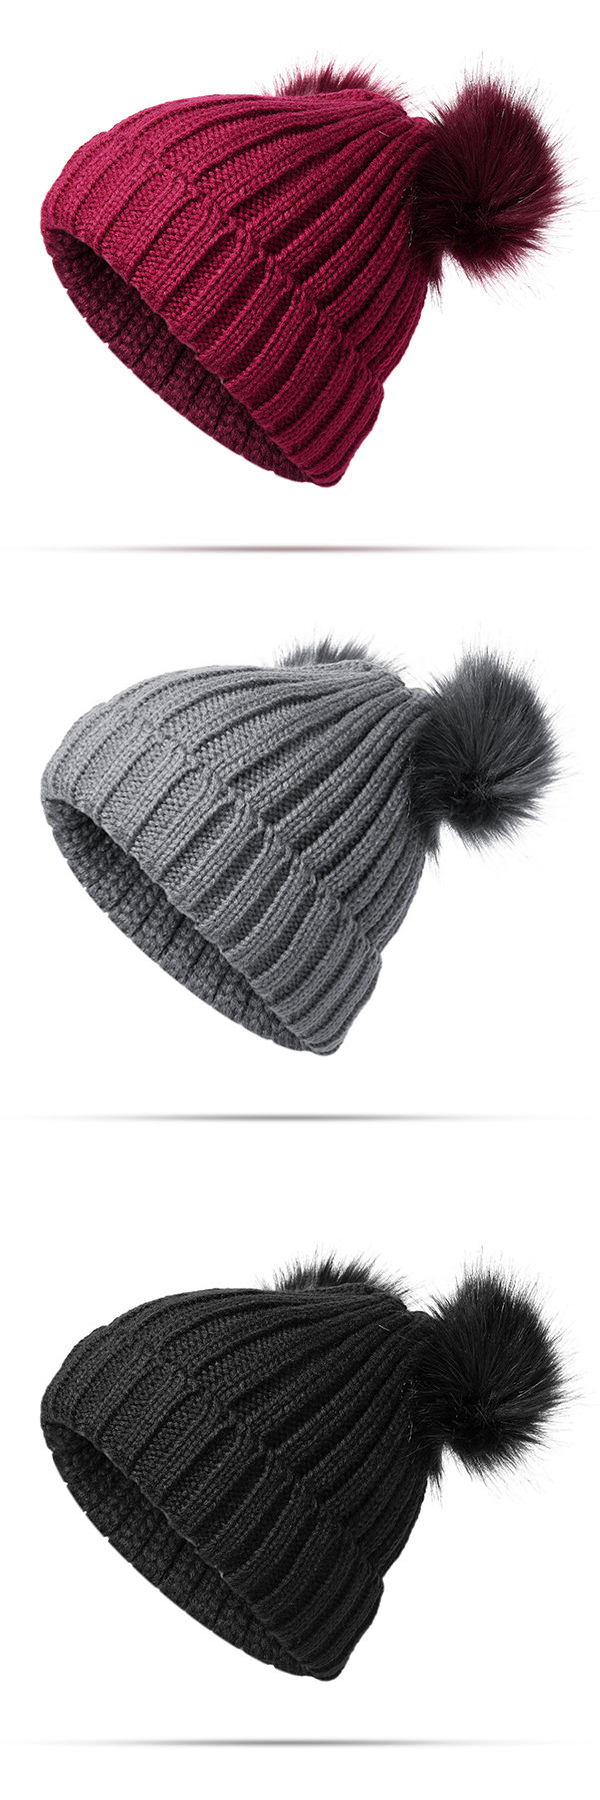 149448a5b00 Womens Knit Pom Pom Bucket Beanie Cap Soft Comfortable Fashionable Winter  Warm Outdoor Snow Hats  fashion  style  hat  accessories